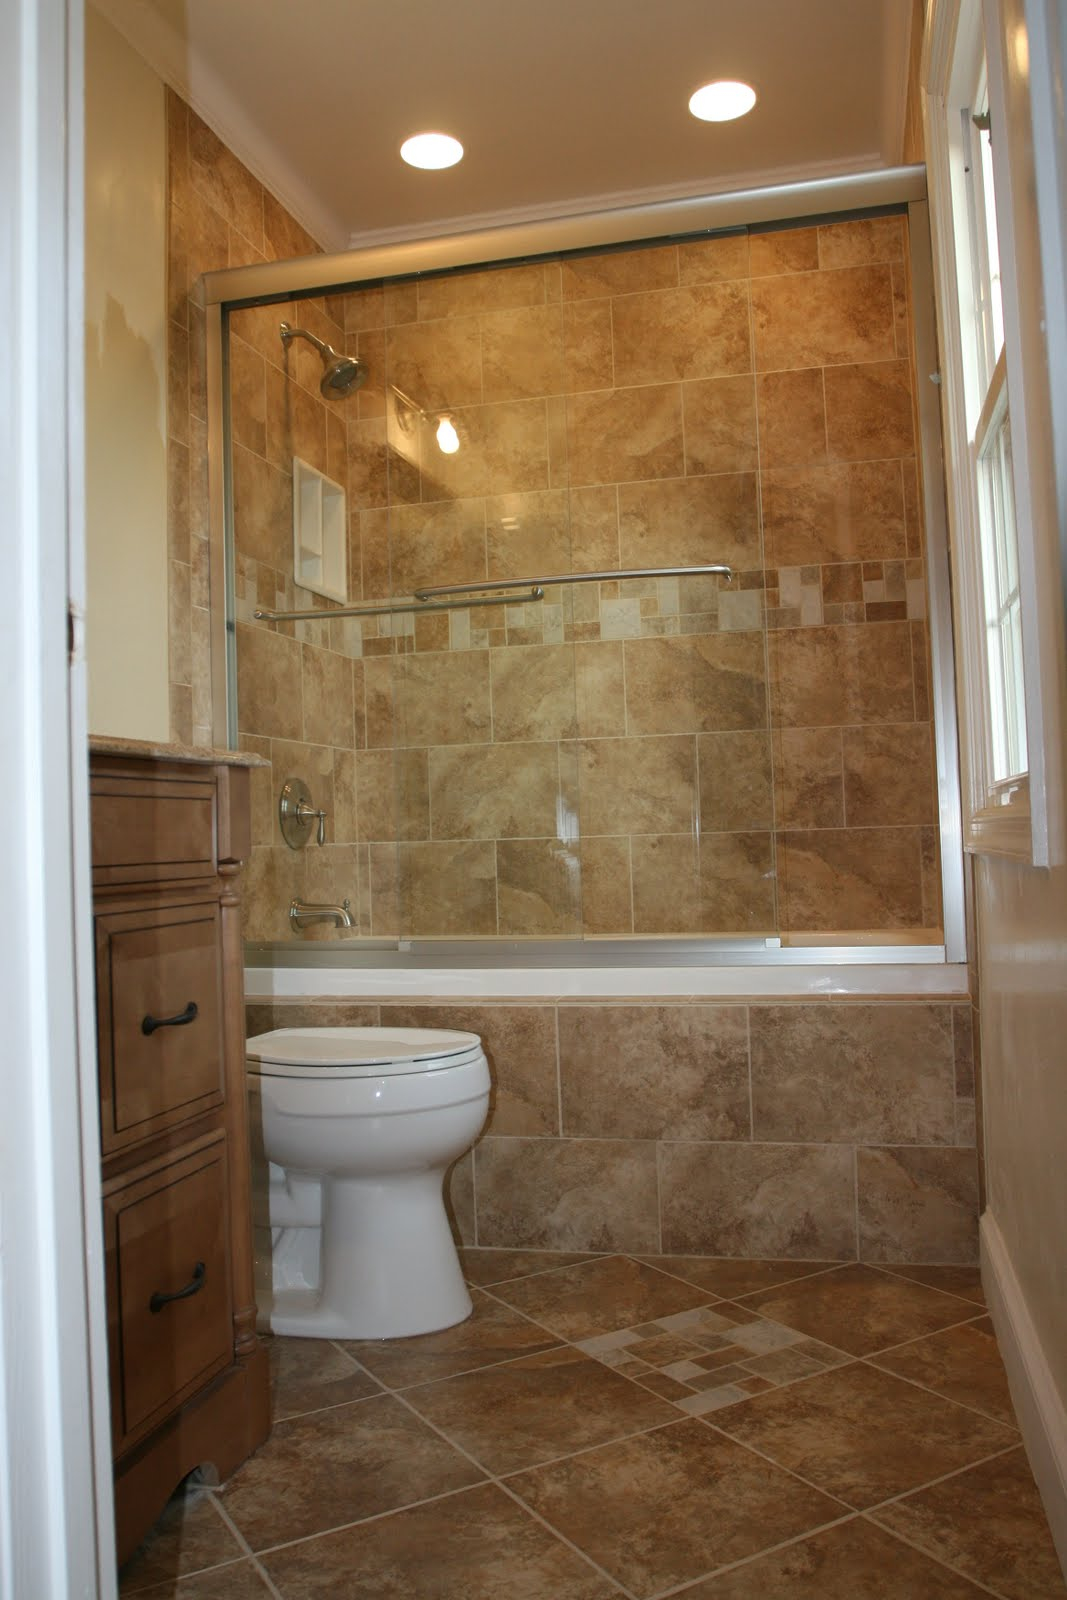 Bathroom remodeling design ideas tile shower niches for Bathroom ideas remodel